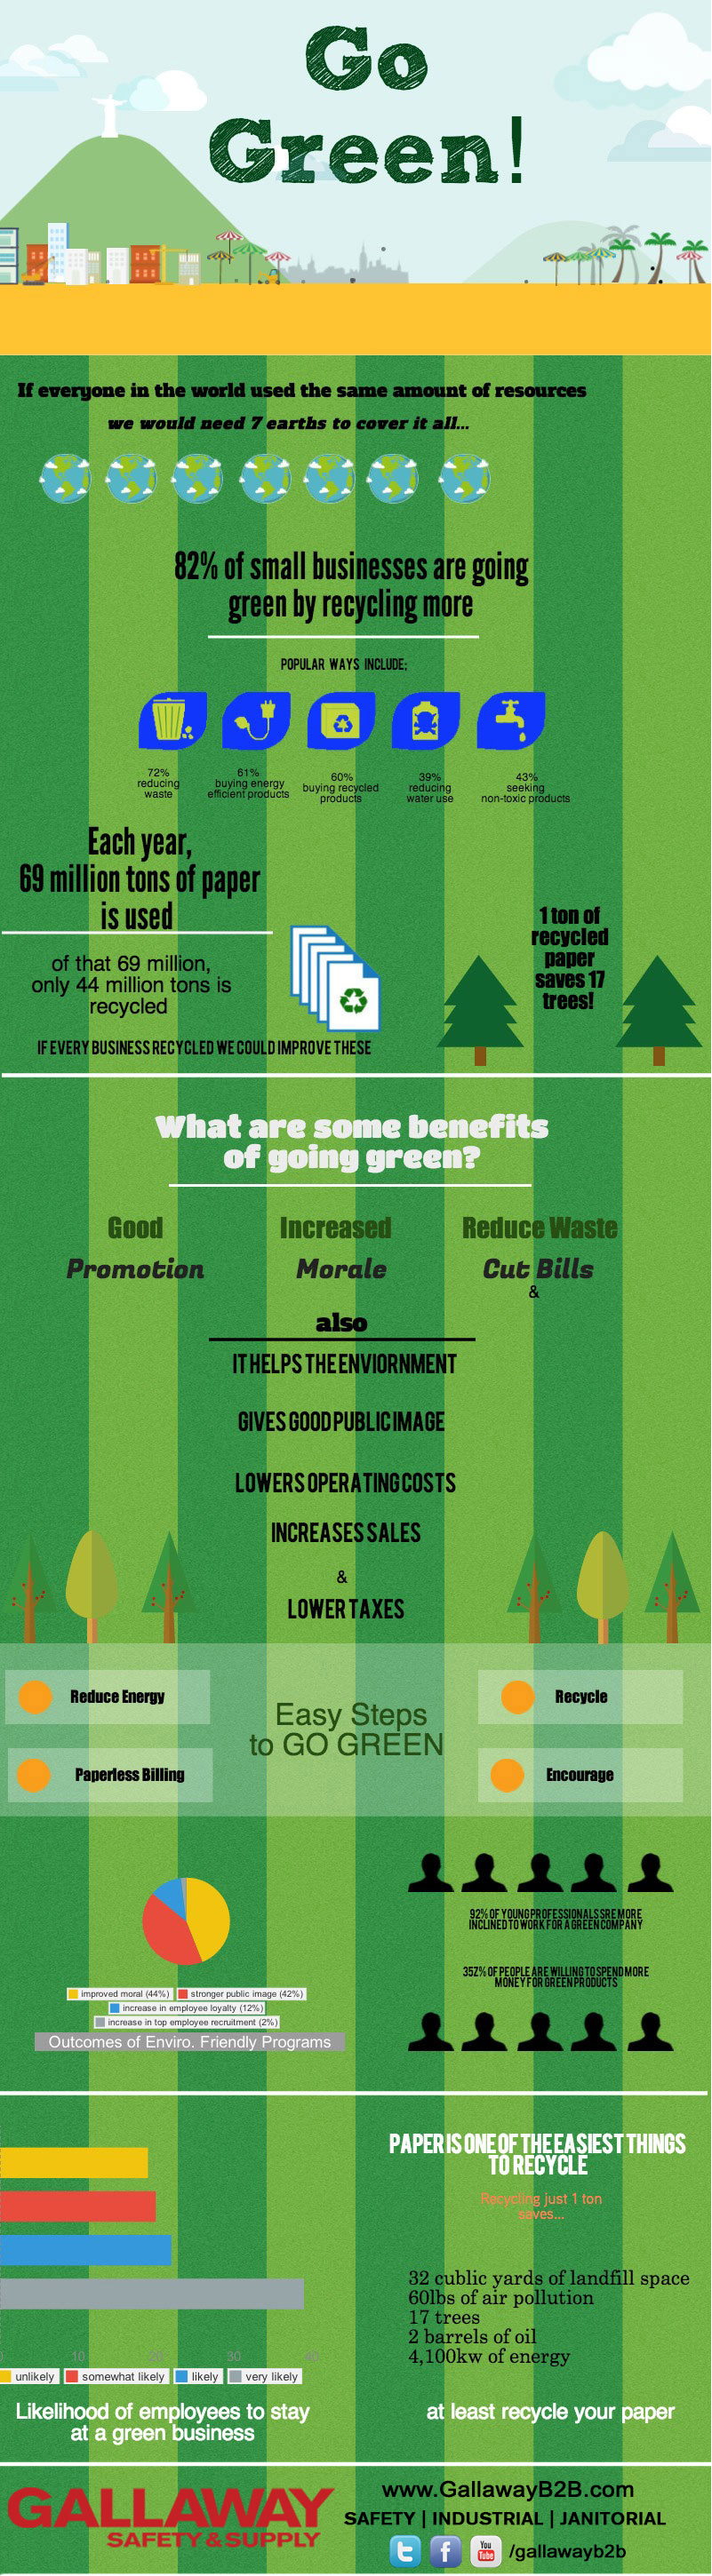 Businesses are Going Green